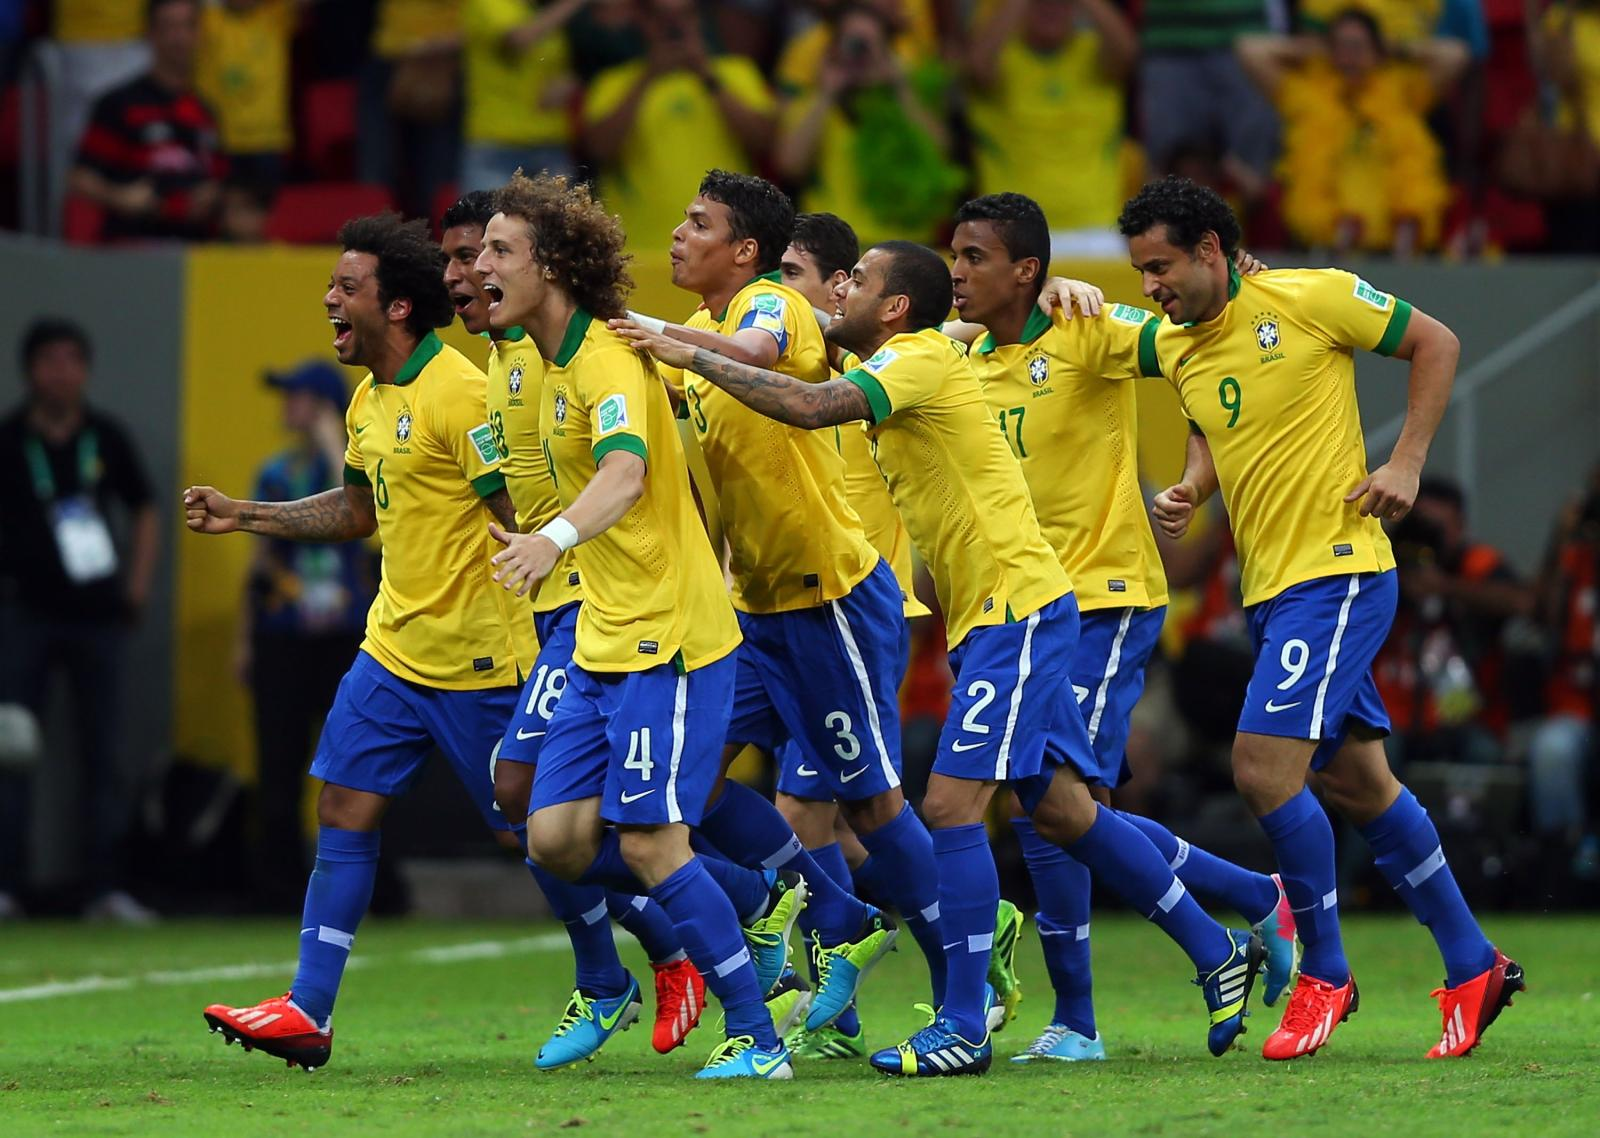 Five times world champions brazil leapt back into the top 10 of the